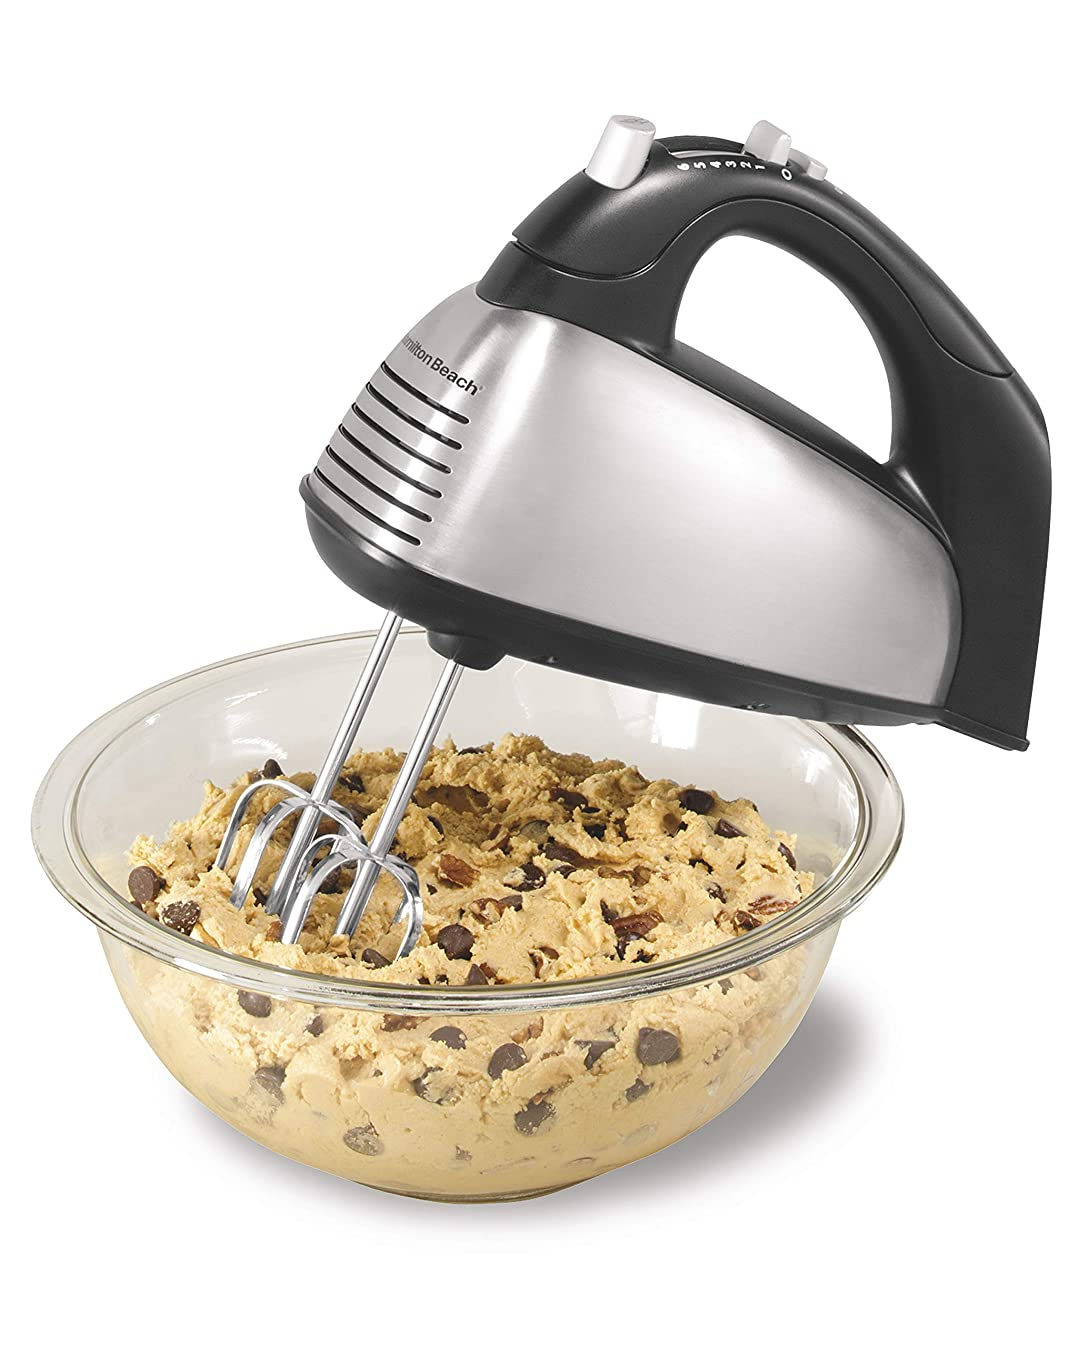 Hamilton Beach 62650A Classic 6-Speed Electric Hand Mixer, with with Snap-On Storage Case, Brushed Stainless